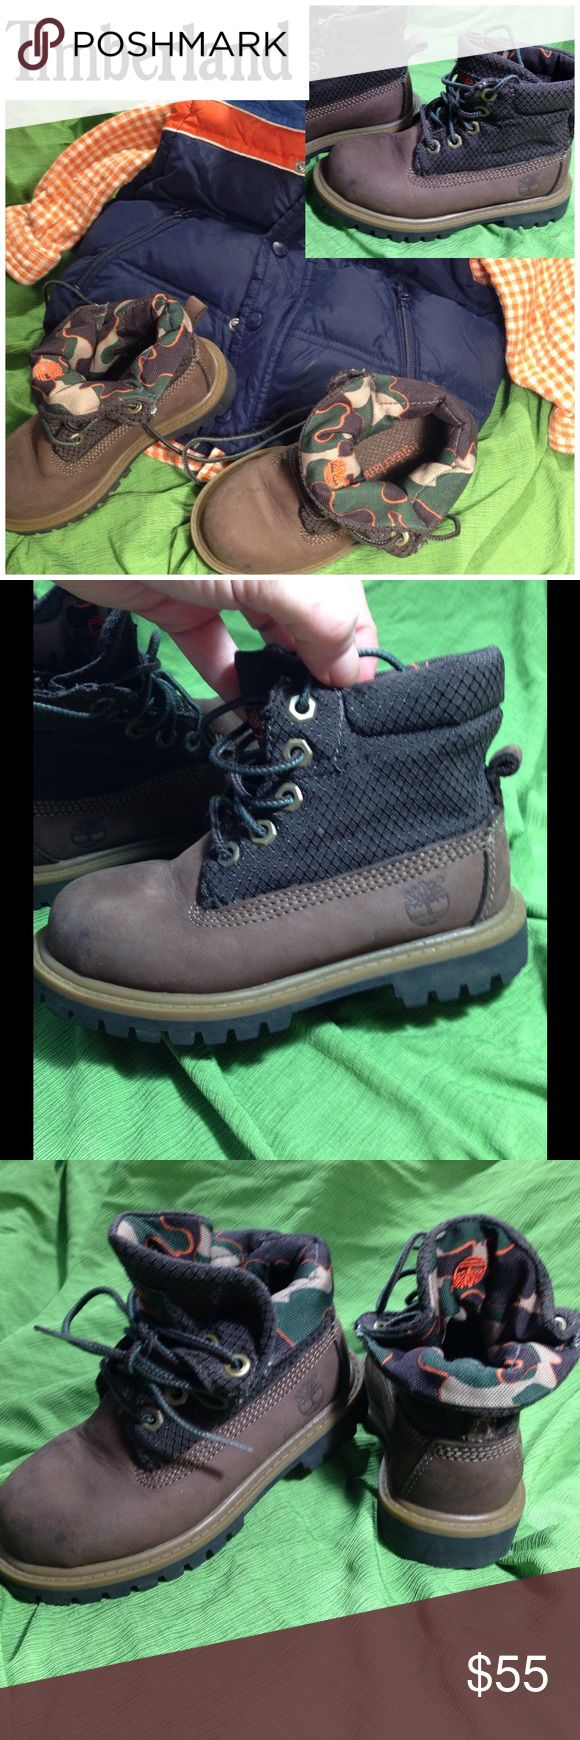 *Kids* Timberland Leather Boots size 8 1/2Toddler *Kids* Timberland Boots size 8 1/2 adorable Dark brown, leather,  lace up or fold over, great support only worn a couple times excellent condition please ask, selling on other sites trying to see how the kids market fares here. Timberland Shoes Boots